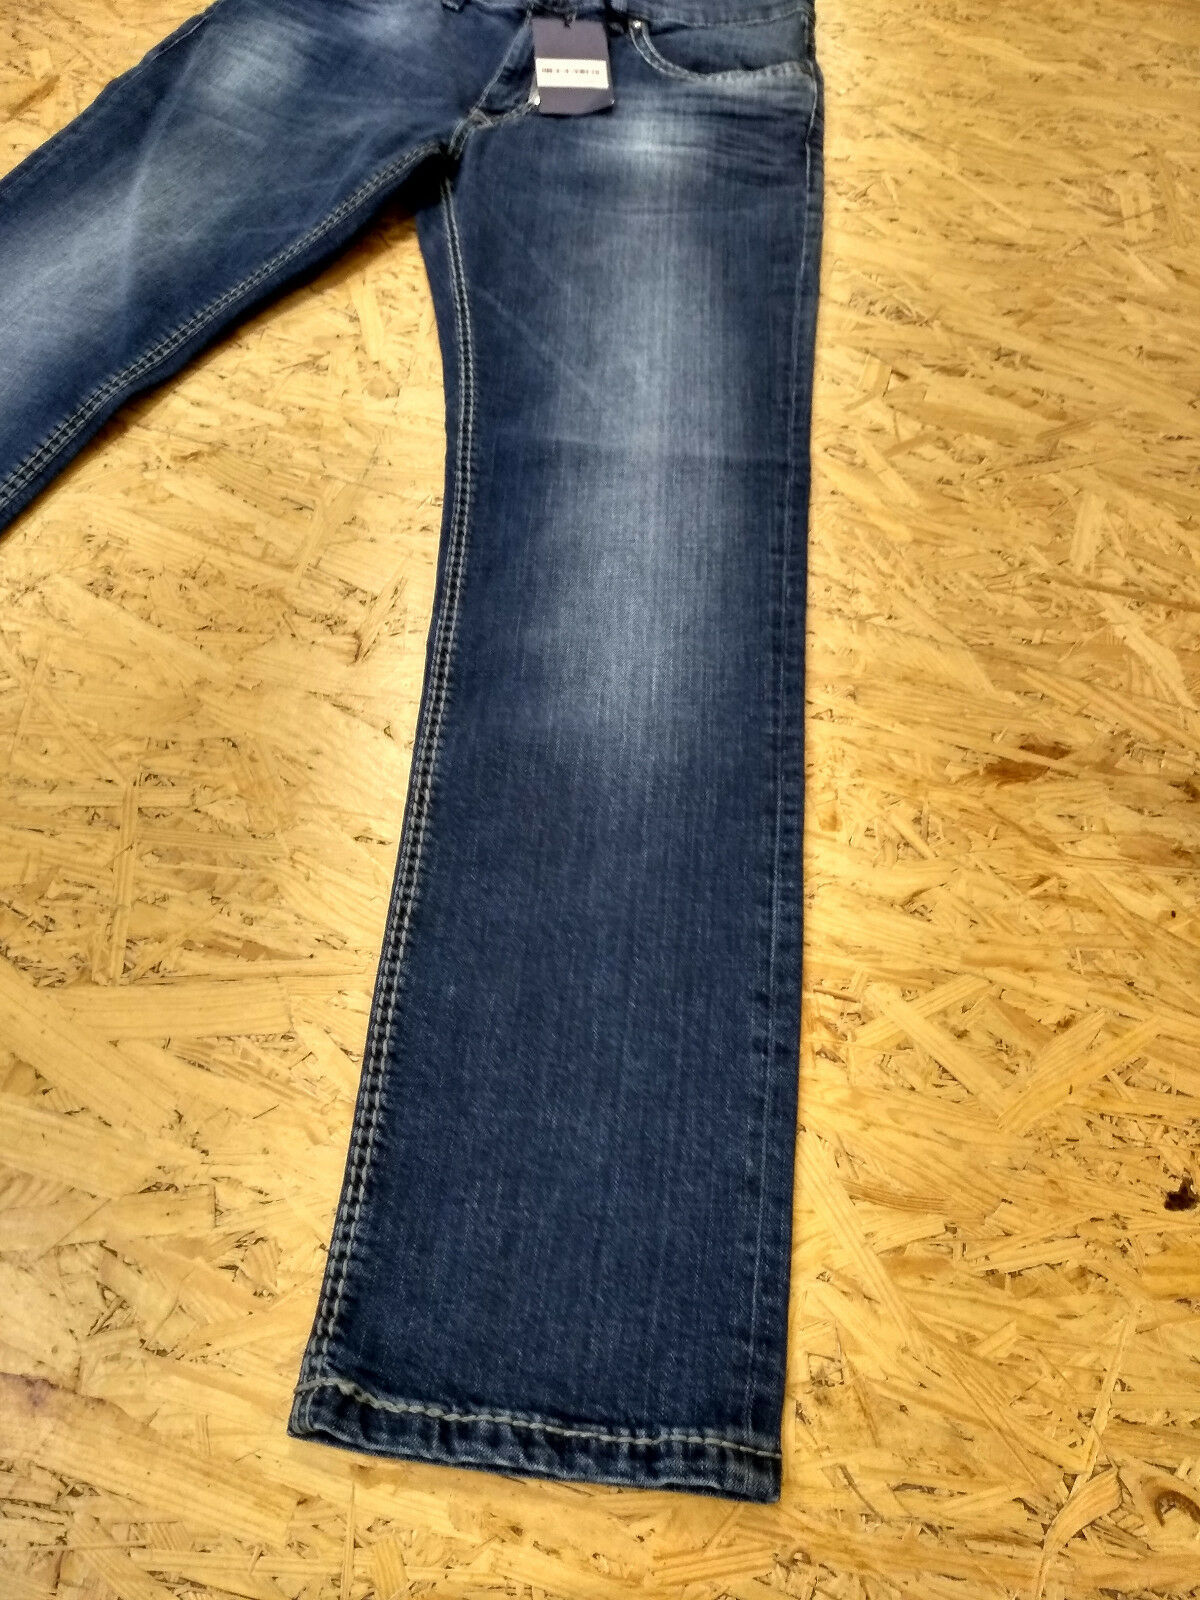 Pioneer -- -- -- Handcrafted -- Jeans -- Rando -- 1654 - 9736.362 - saddle stitch dbbf95